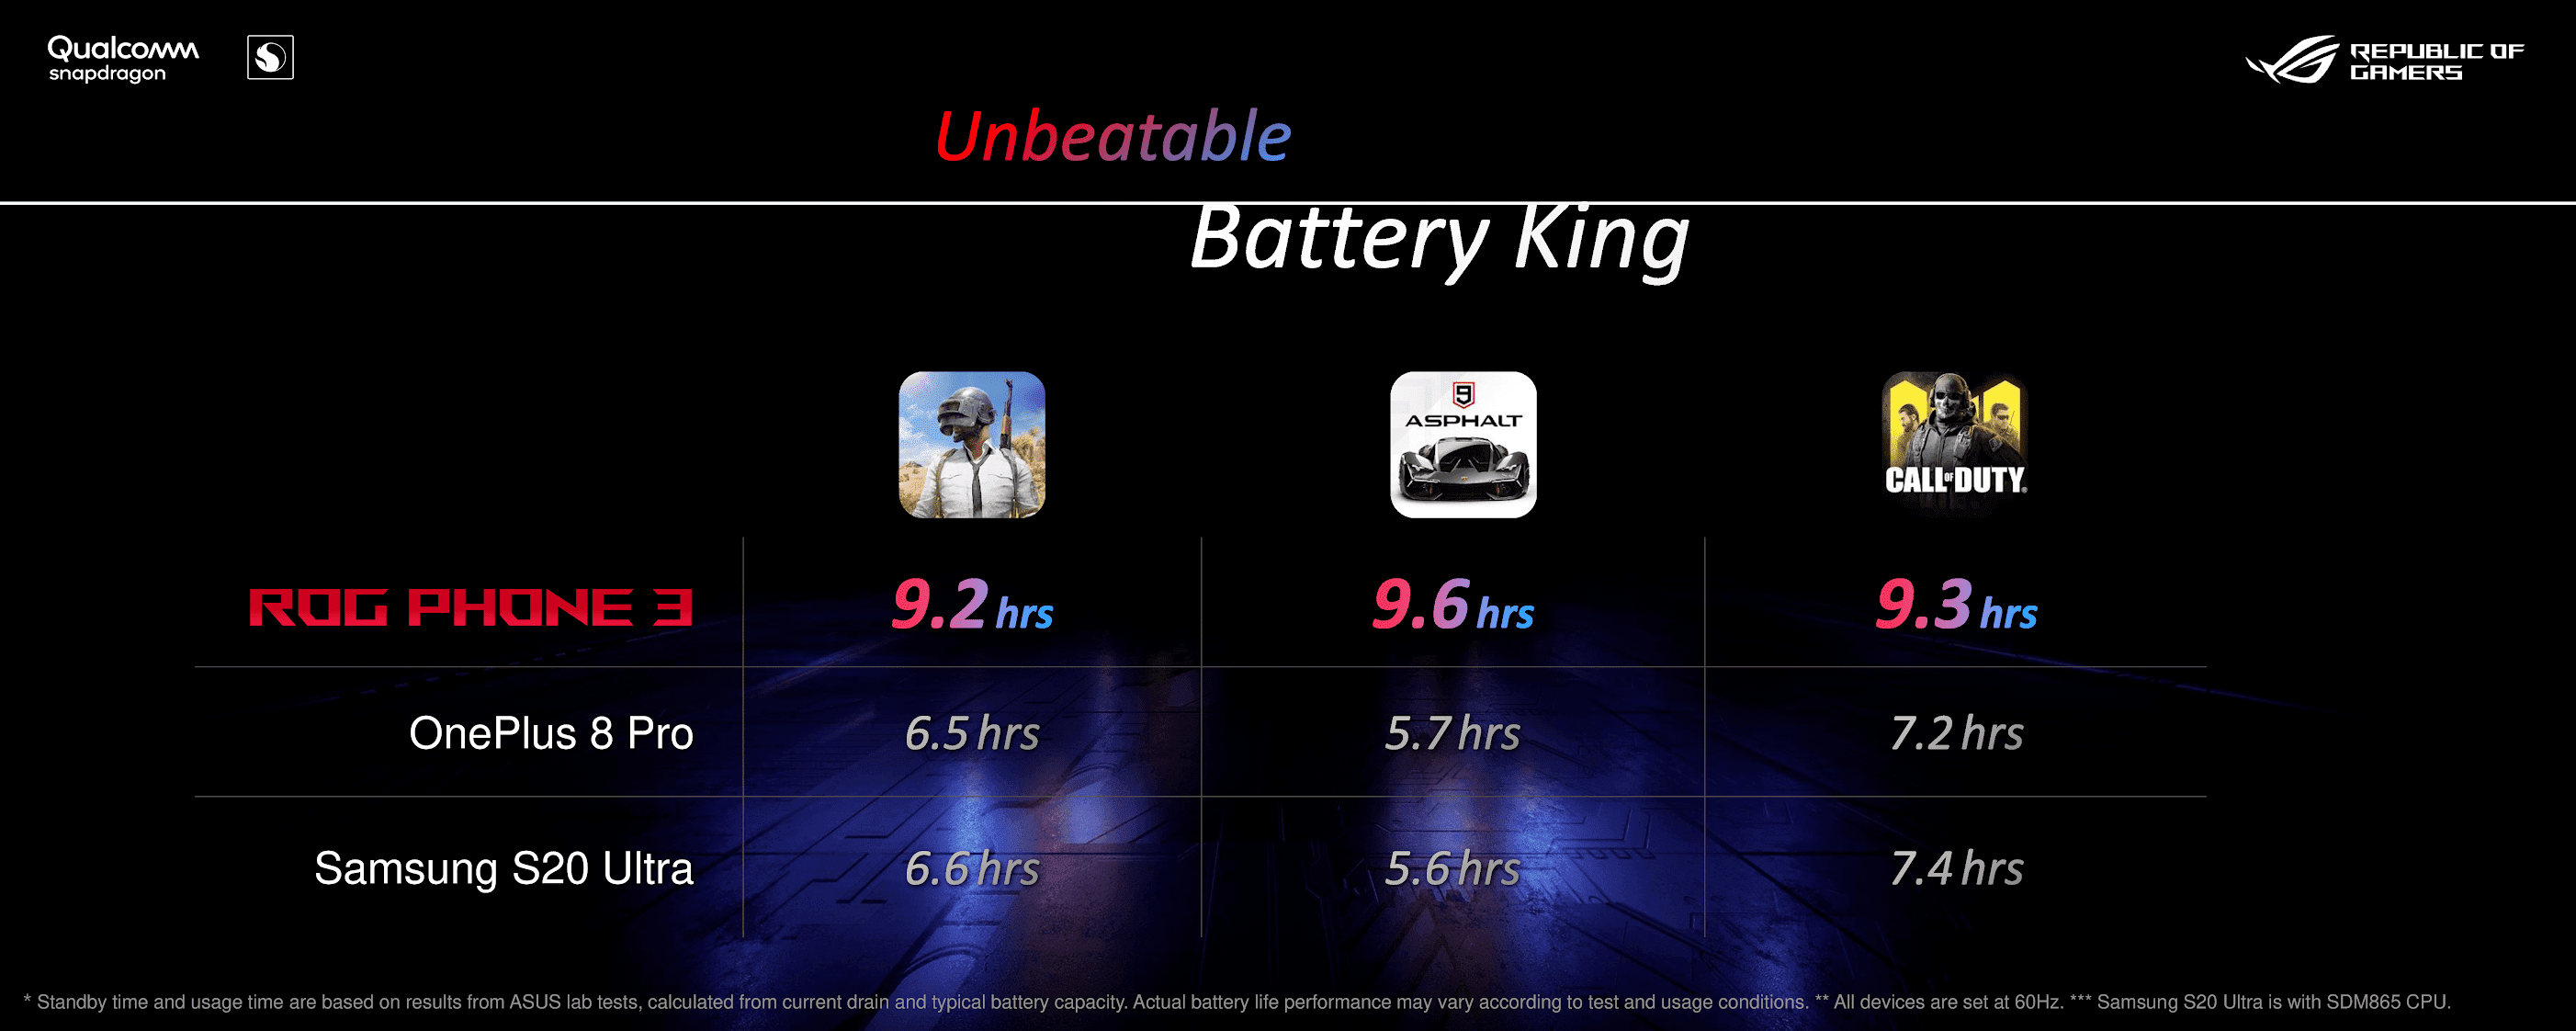 Unbeatable Battery King Asus ROG Phone 3